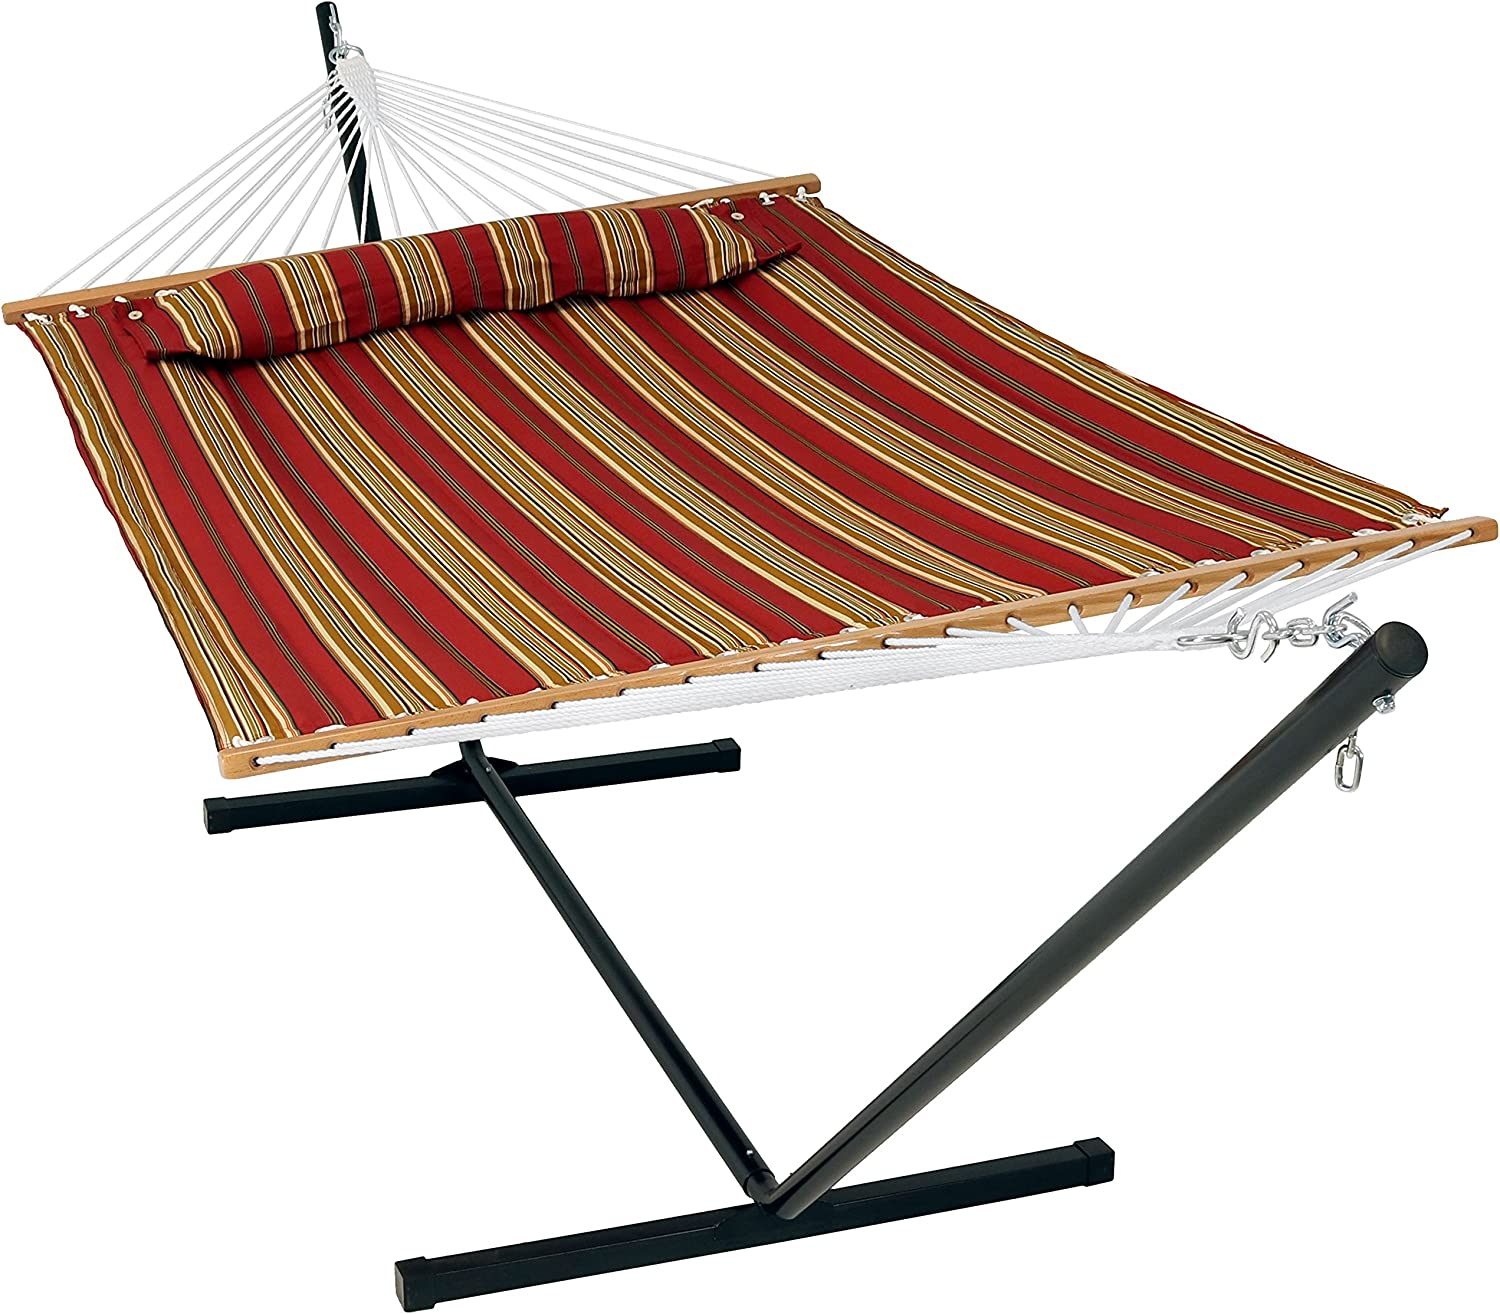 Sunnydaze 12 ft Steel Stand with Red Double Spreader Bar Hammock Combo Set